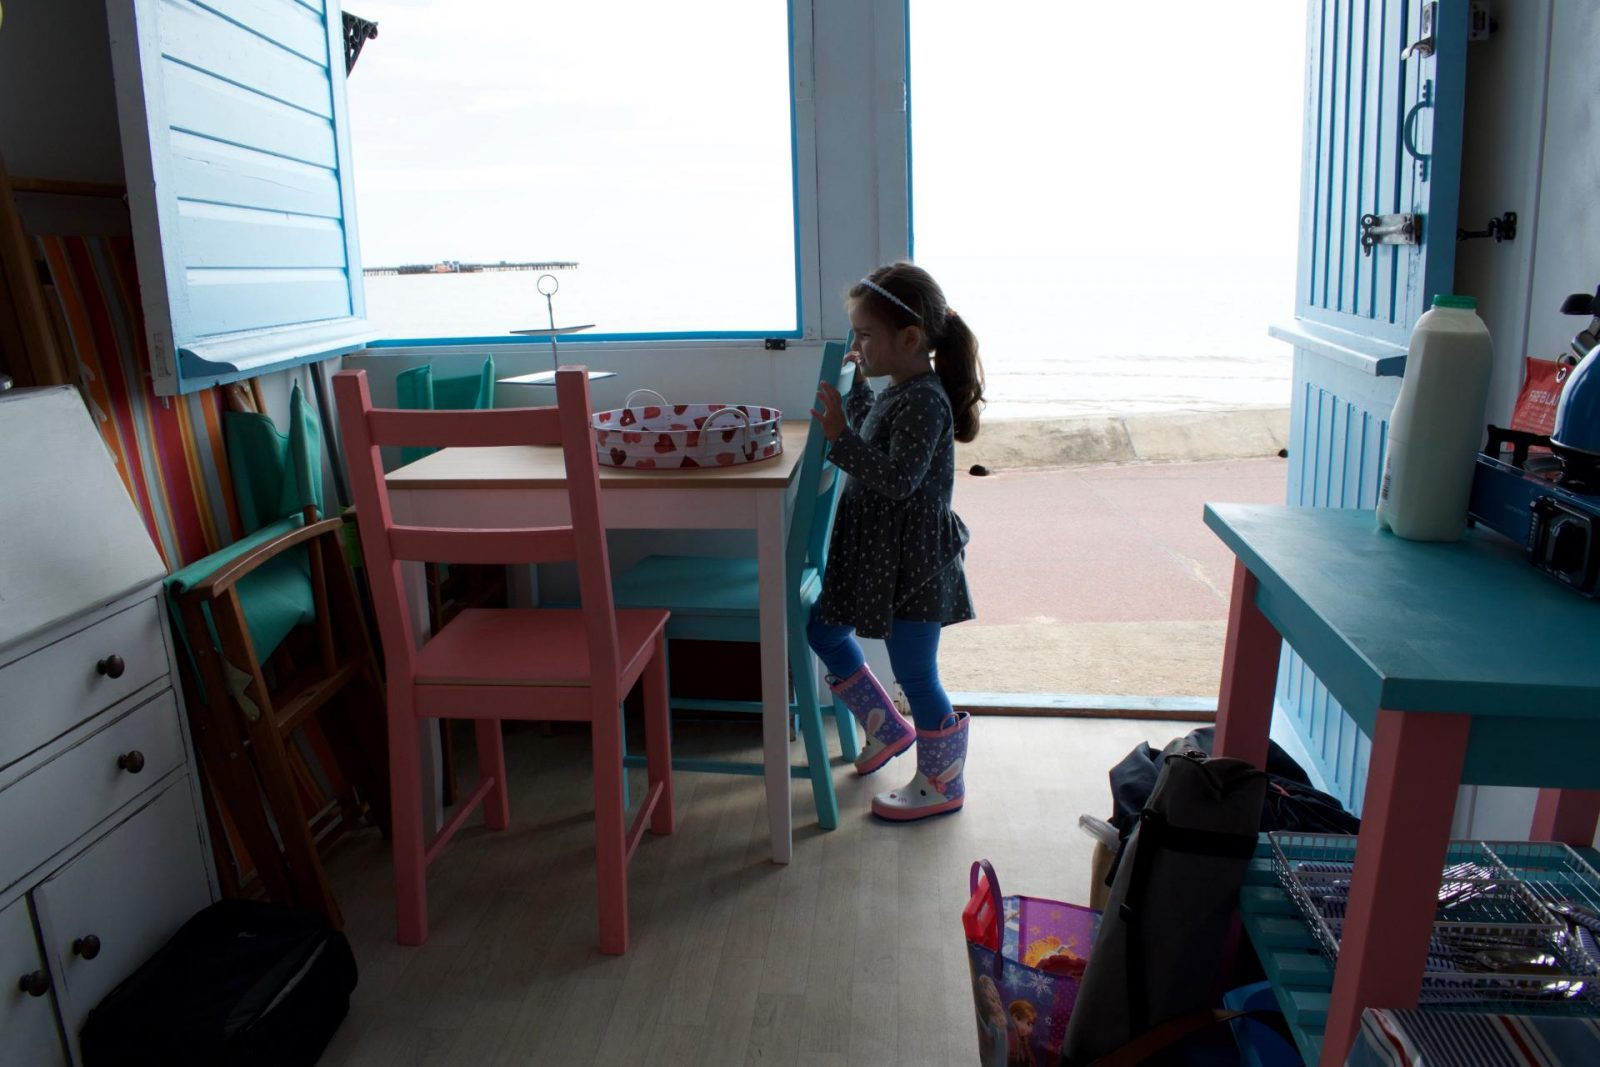 A Beach Day In Sunnysands – Millie's Beach Huts, Walton On The Naze